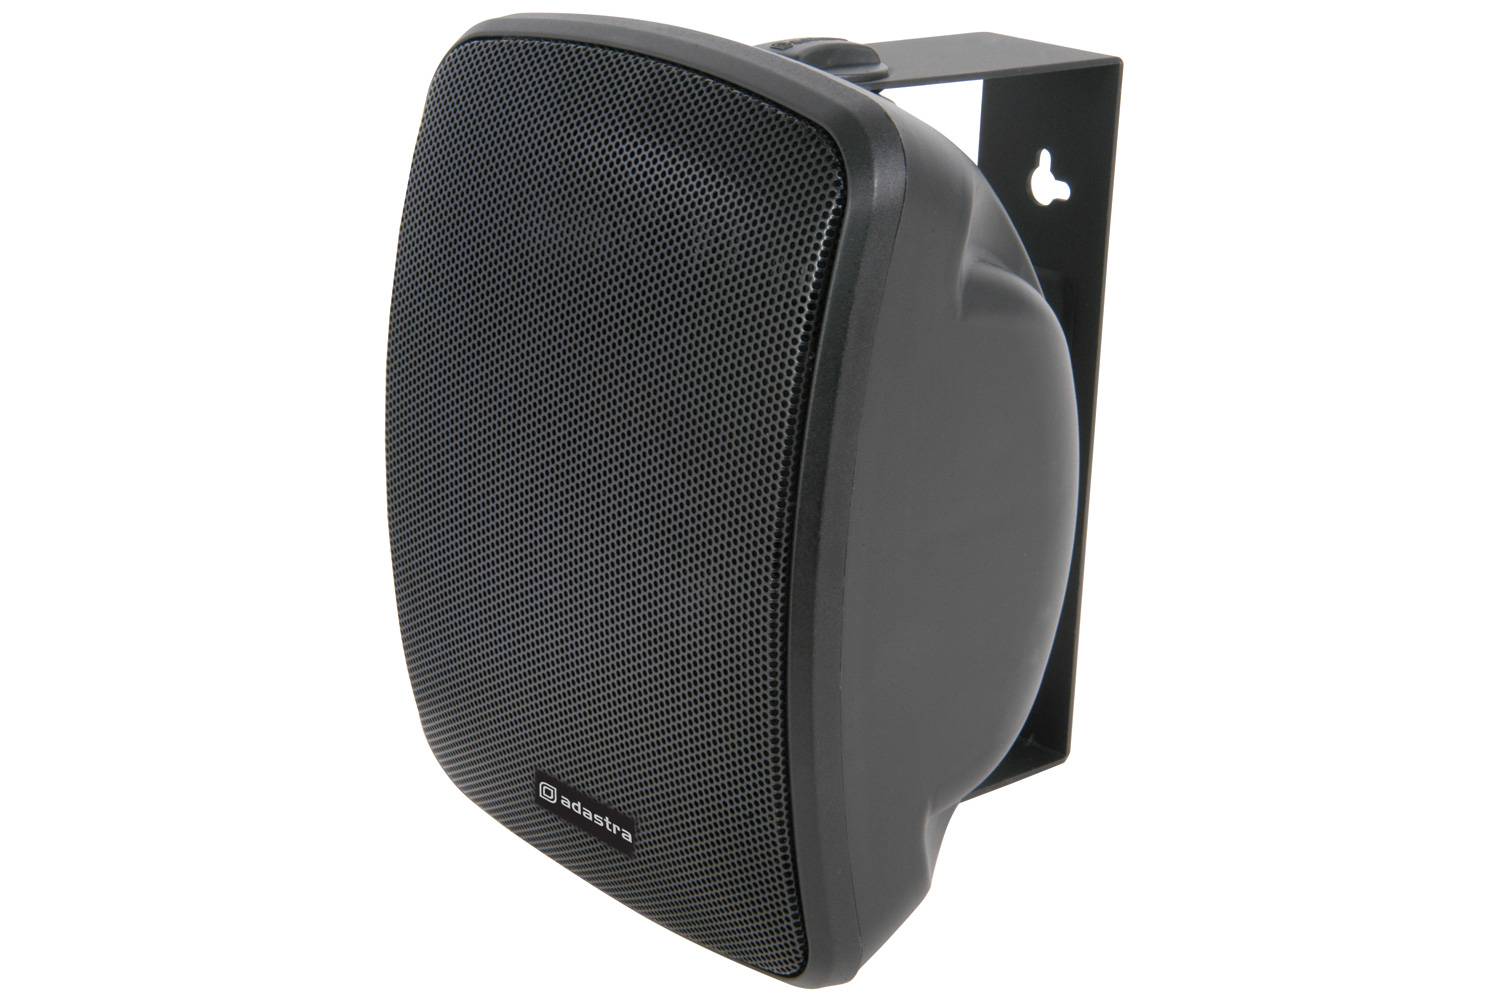 Adastra 952.964UK 40W Black loudspeaker